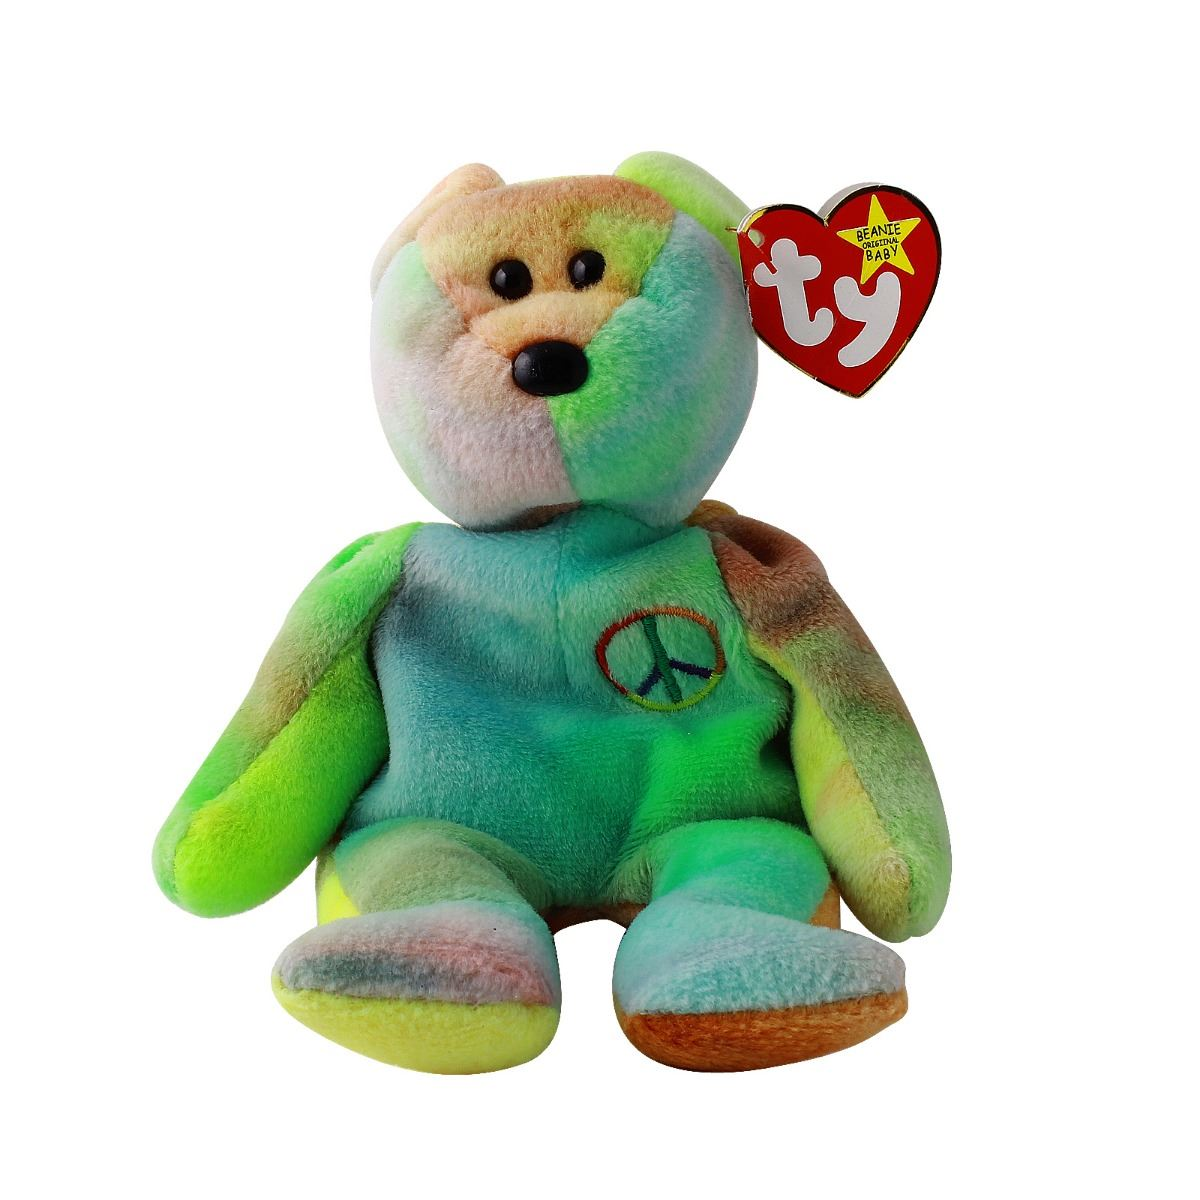 f4353b79279ce6 Image 1 : Discontinued TY Beanie Baby Multi-Colored PEACE BEAR: 1996 - ...